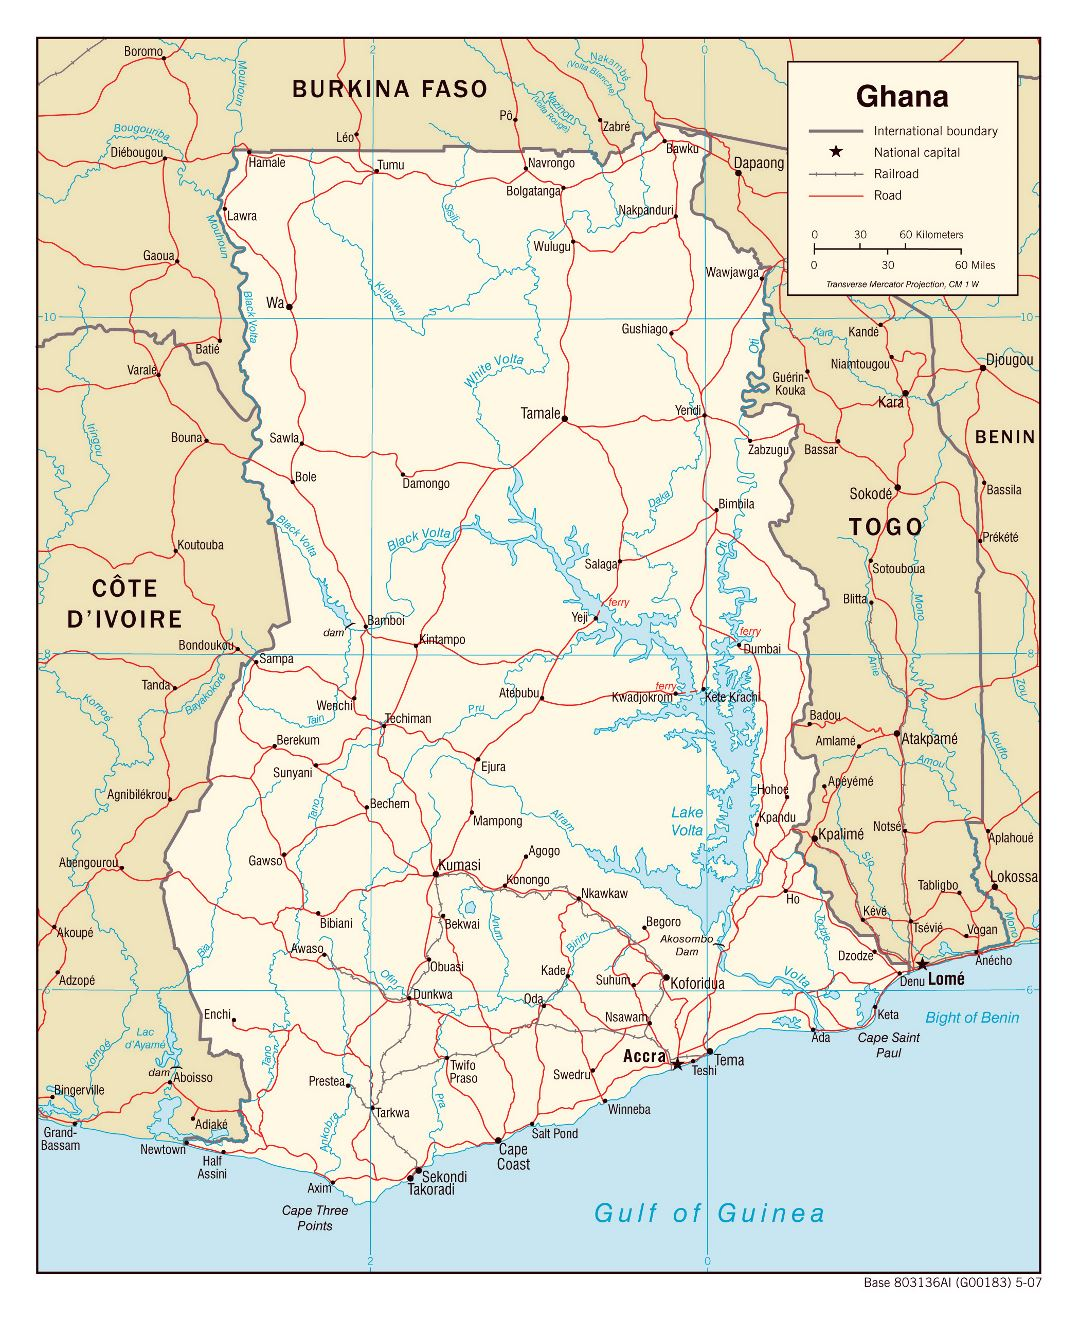 Large political map of Ghana with roads, railroads and cities - 2007